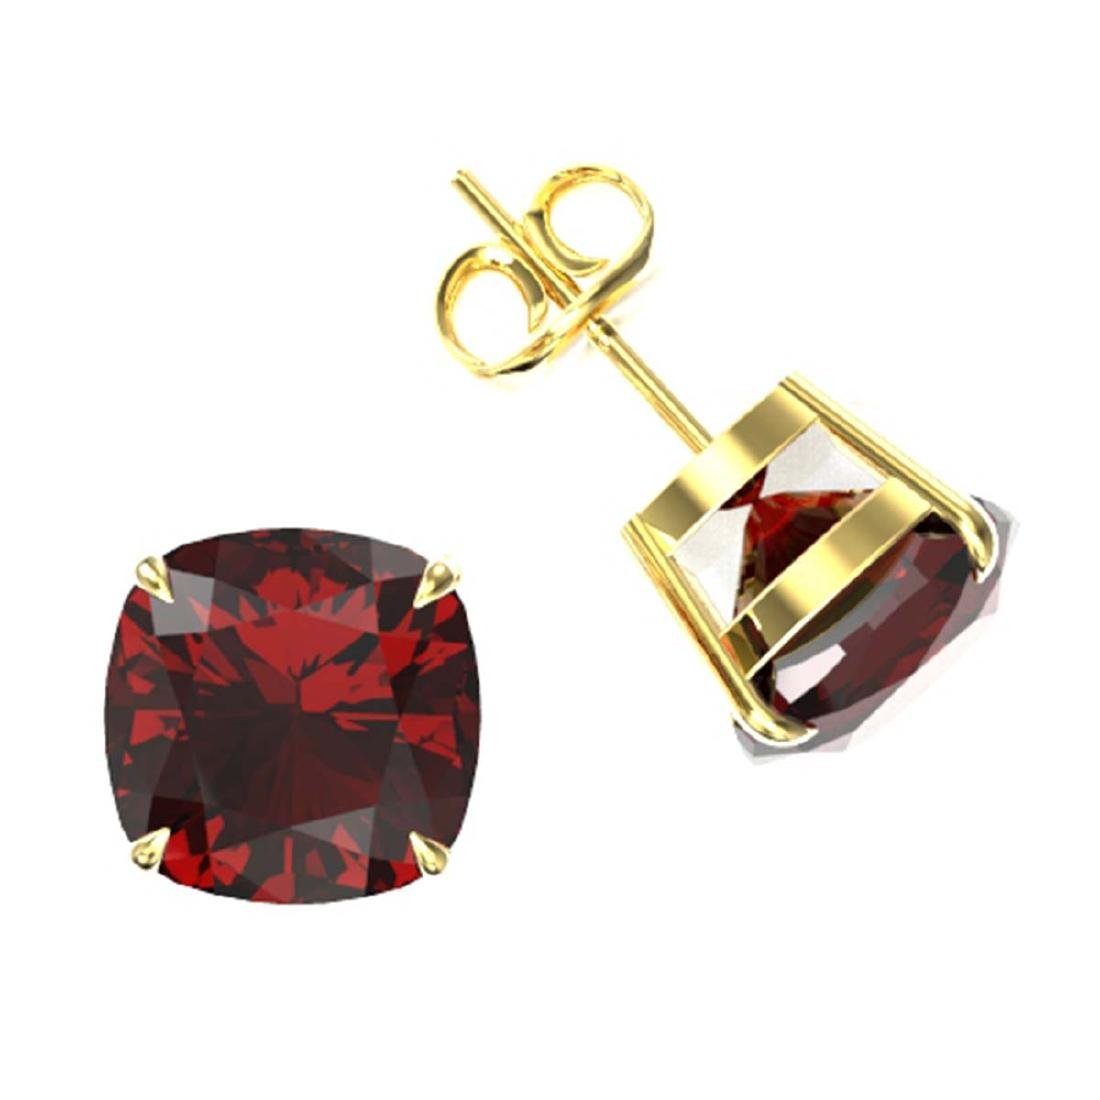 12 CTW Cushion Cut Garnet Designer Solitaire Stud - 2